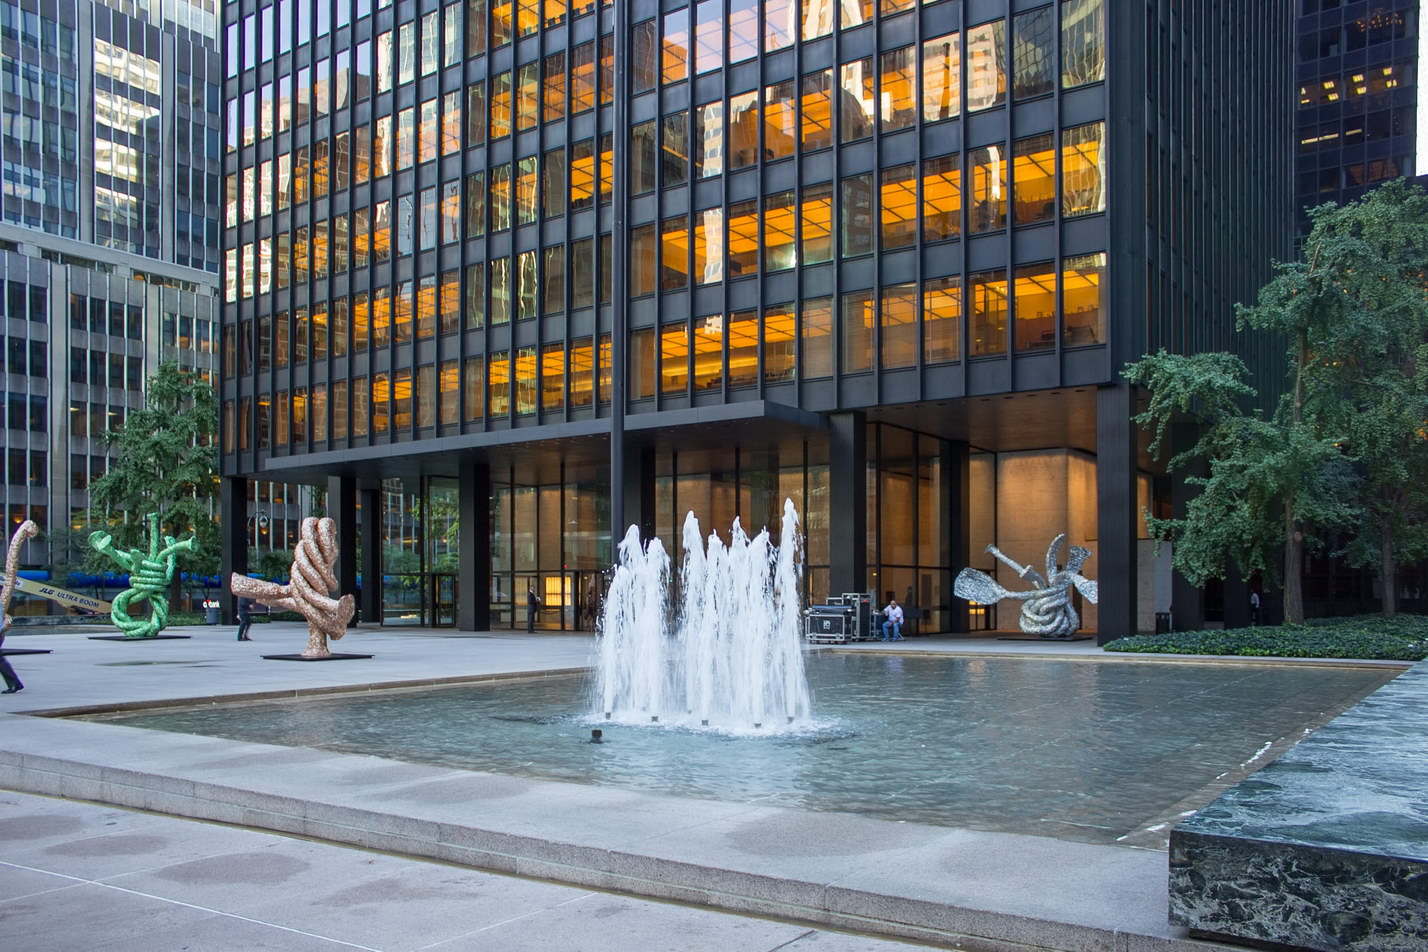 [Seagram Building] IMG_1688 [9/11/2012 8:01:40 AM]